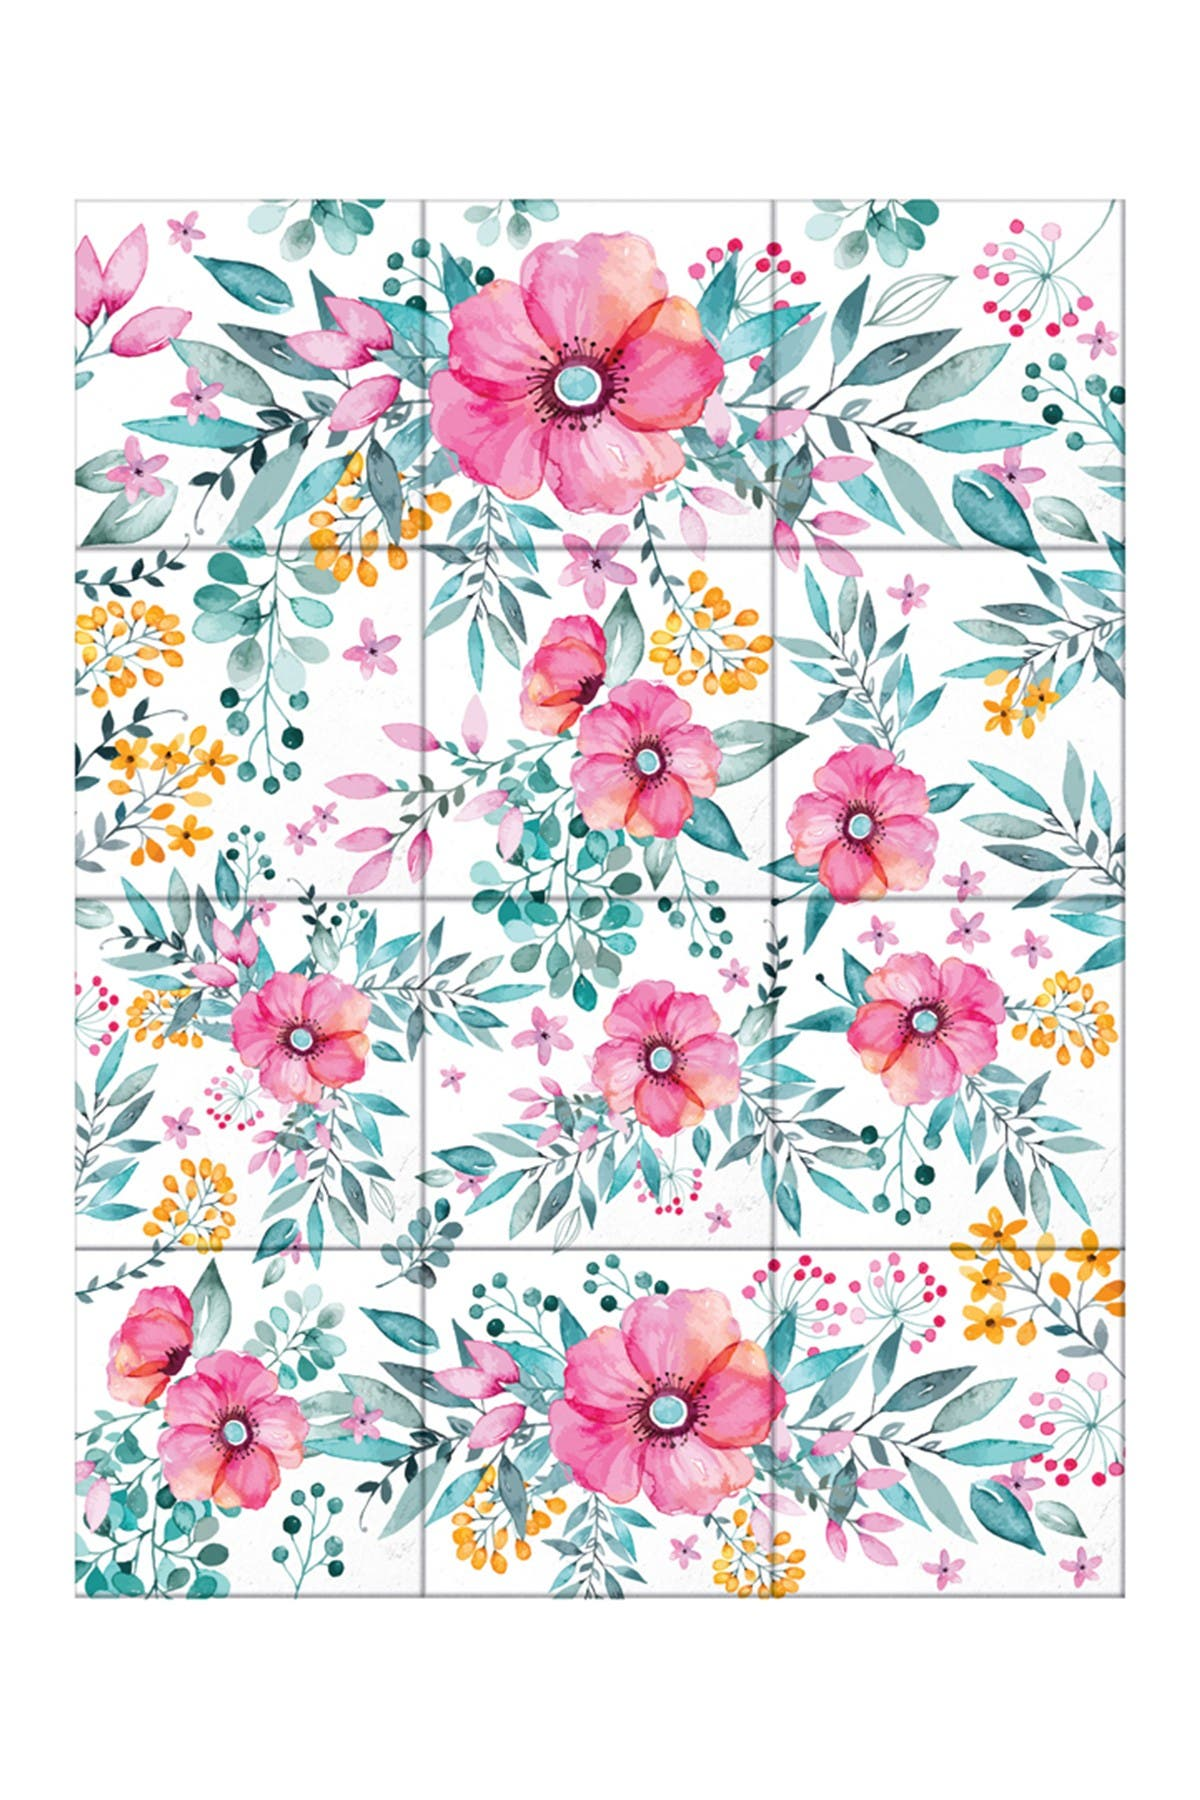 Image of WalPlus Sweet Spring Bouquet Tiles Mix Wall Stickers